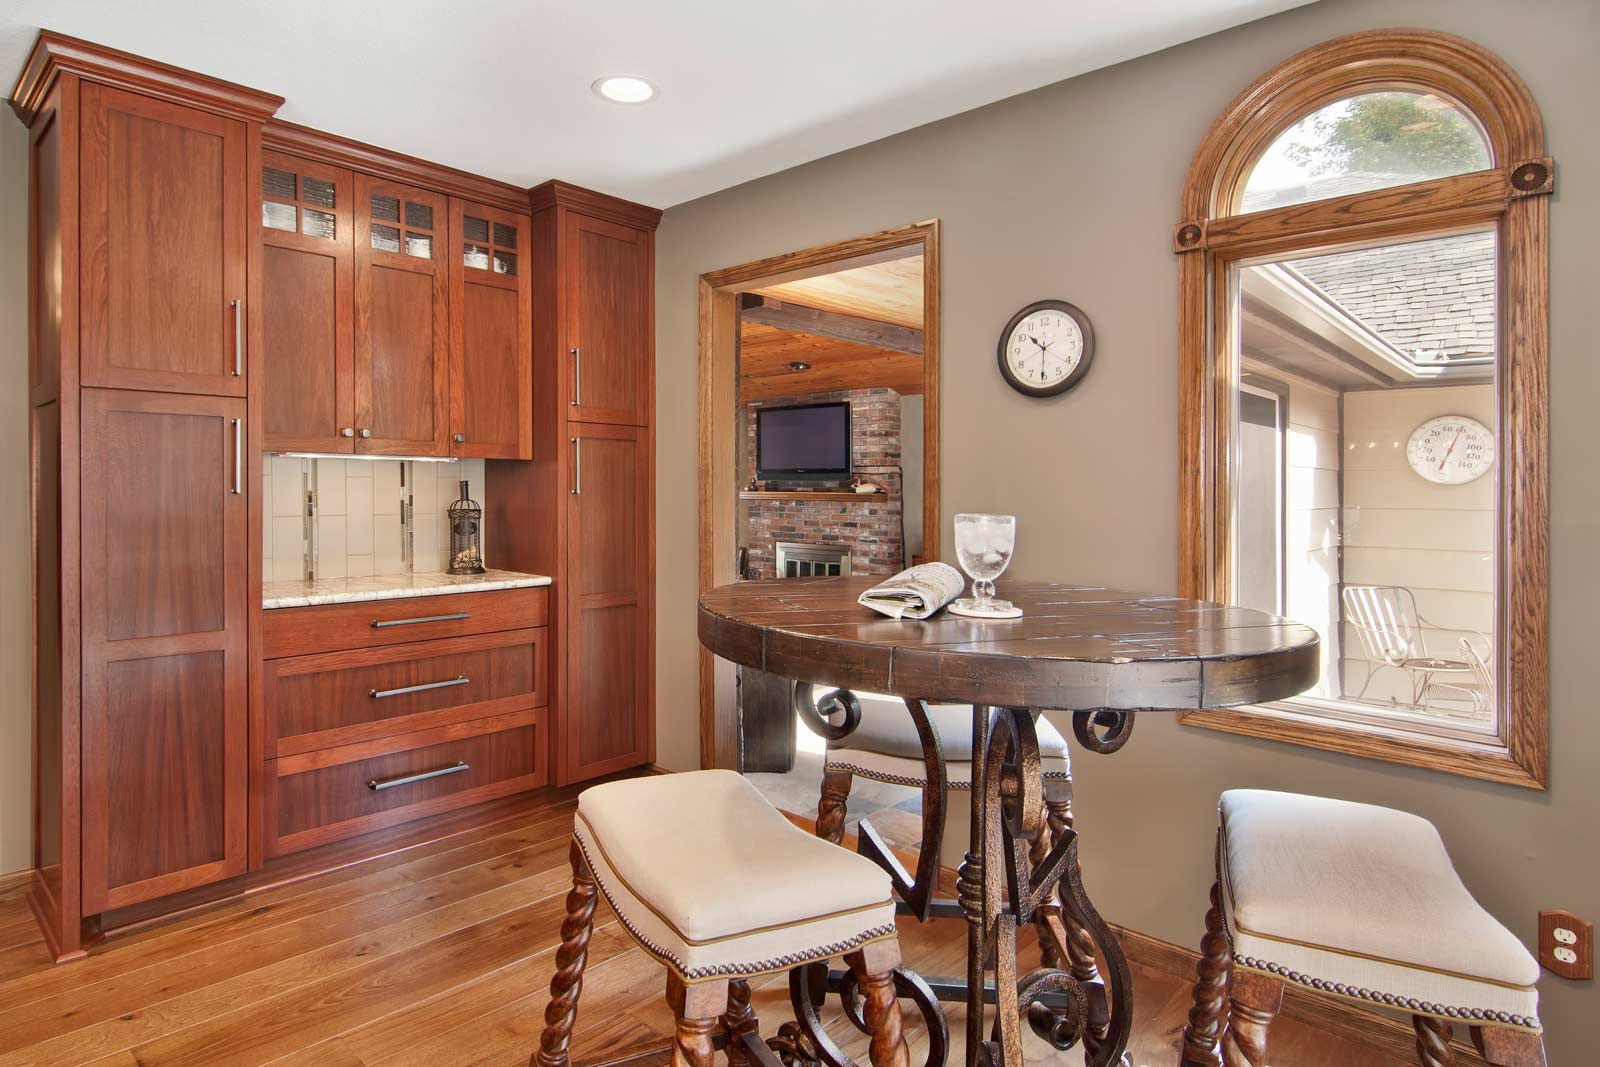 home interior remodeling services james barton design build twin cities home remodeling and design